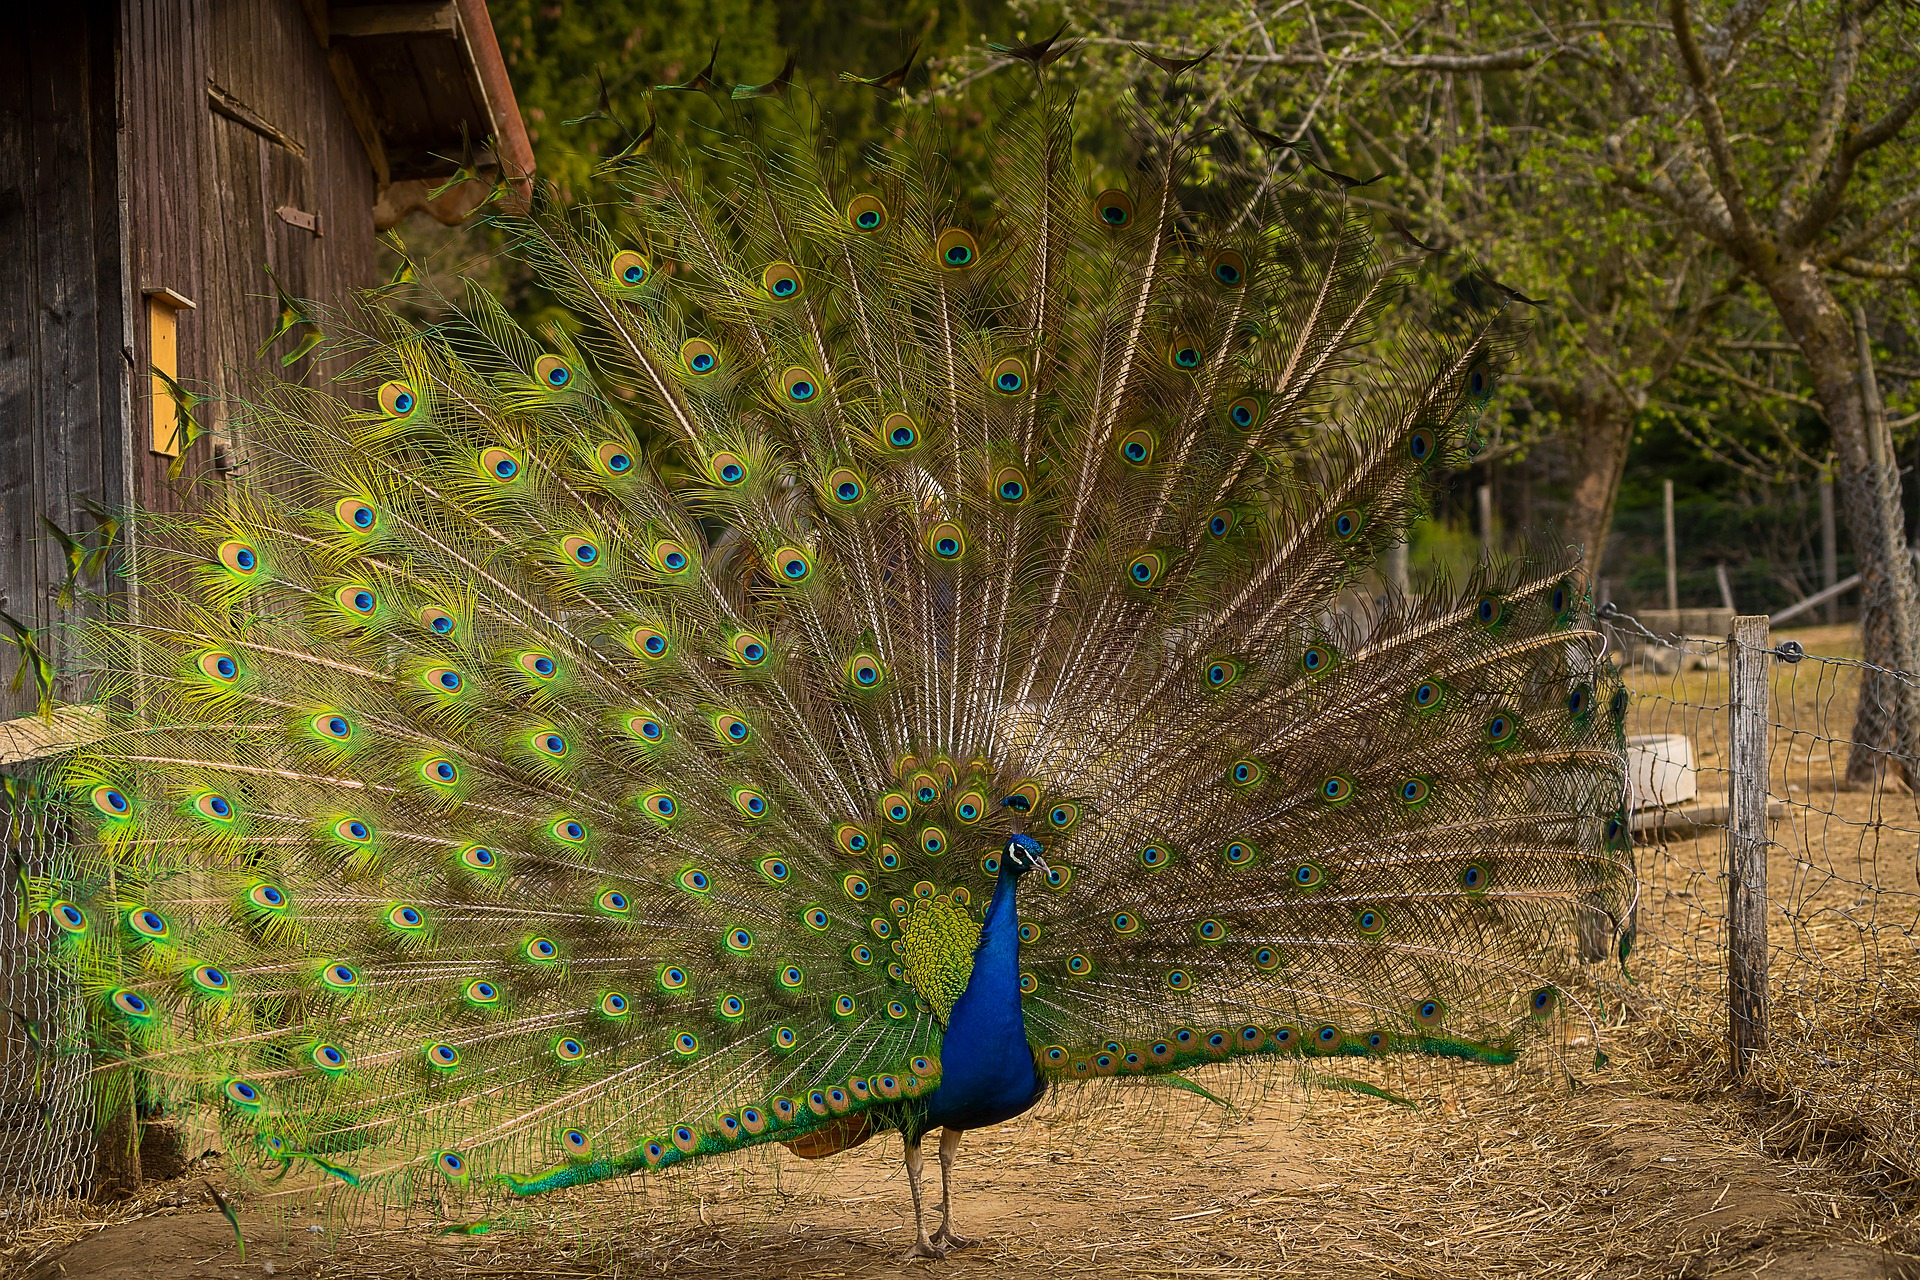 A male peacock showing off its beautiful tail